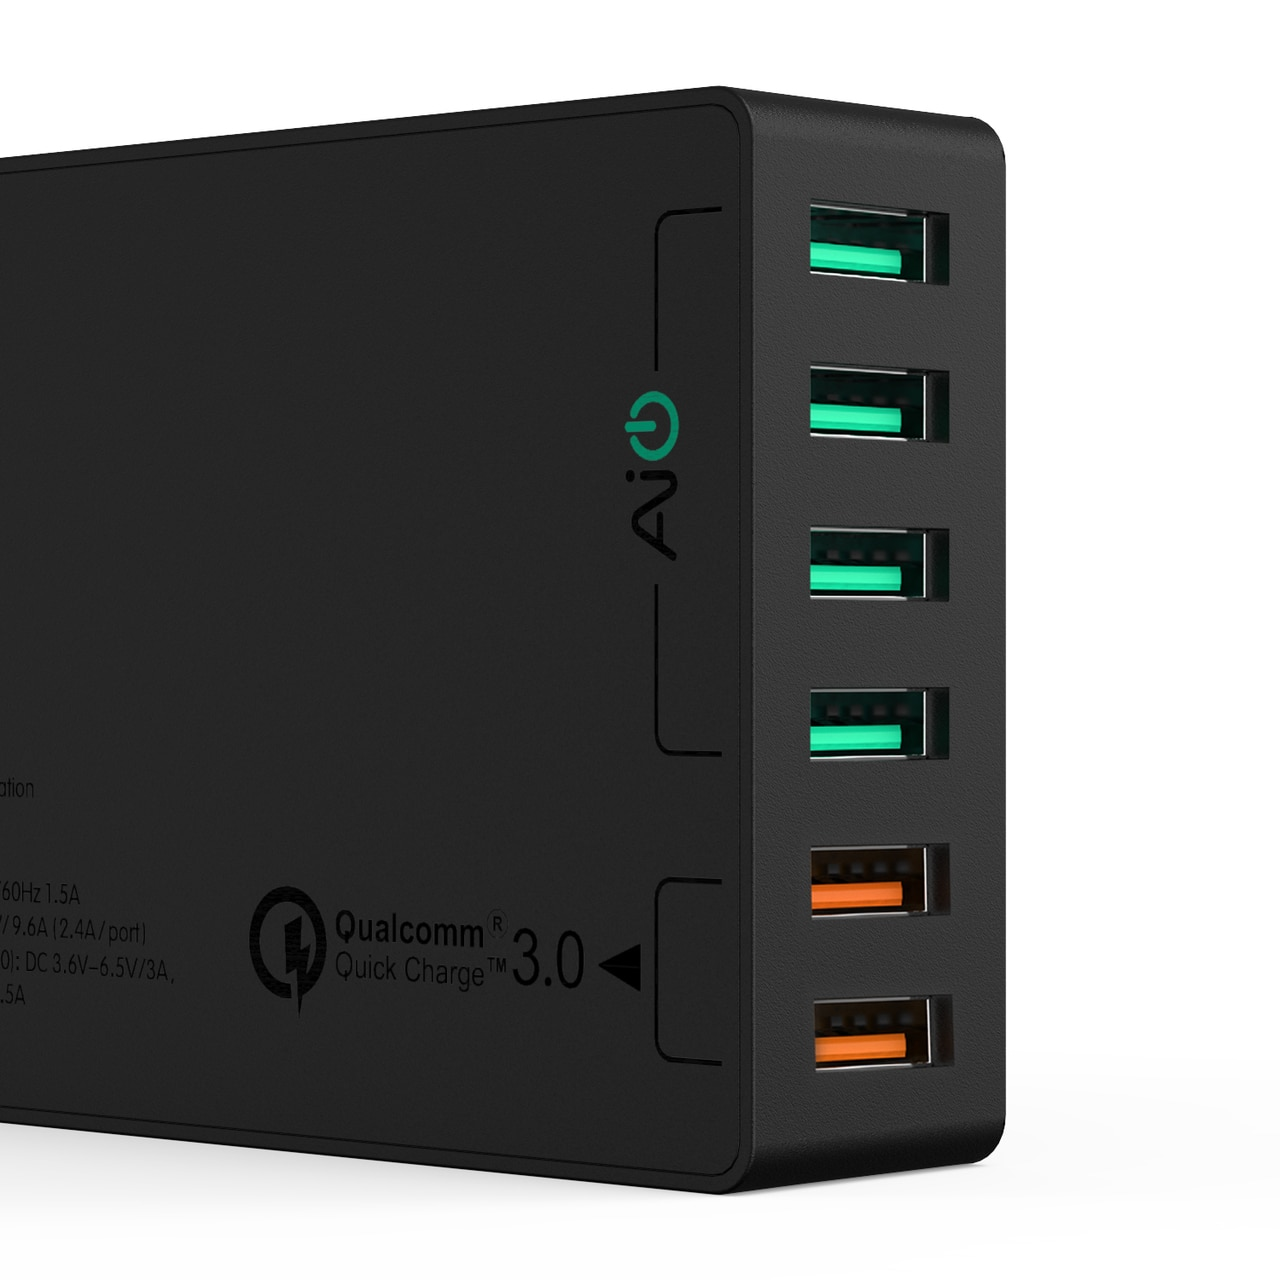 AUKEY 6 Port Desktop Charger with 2 Ports for QC 3.0 4 Ports for PowerIQ - PA-T11